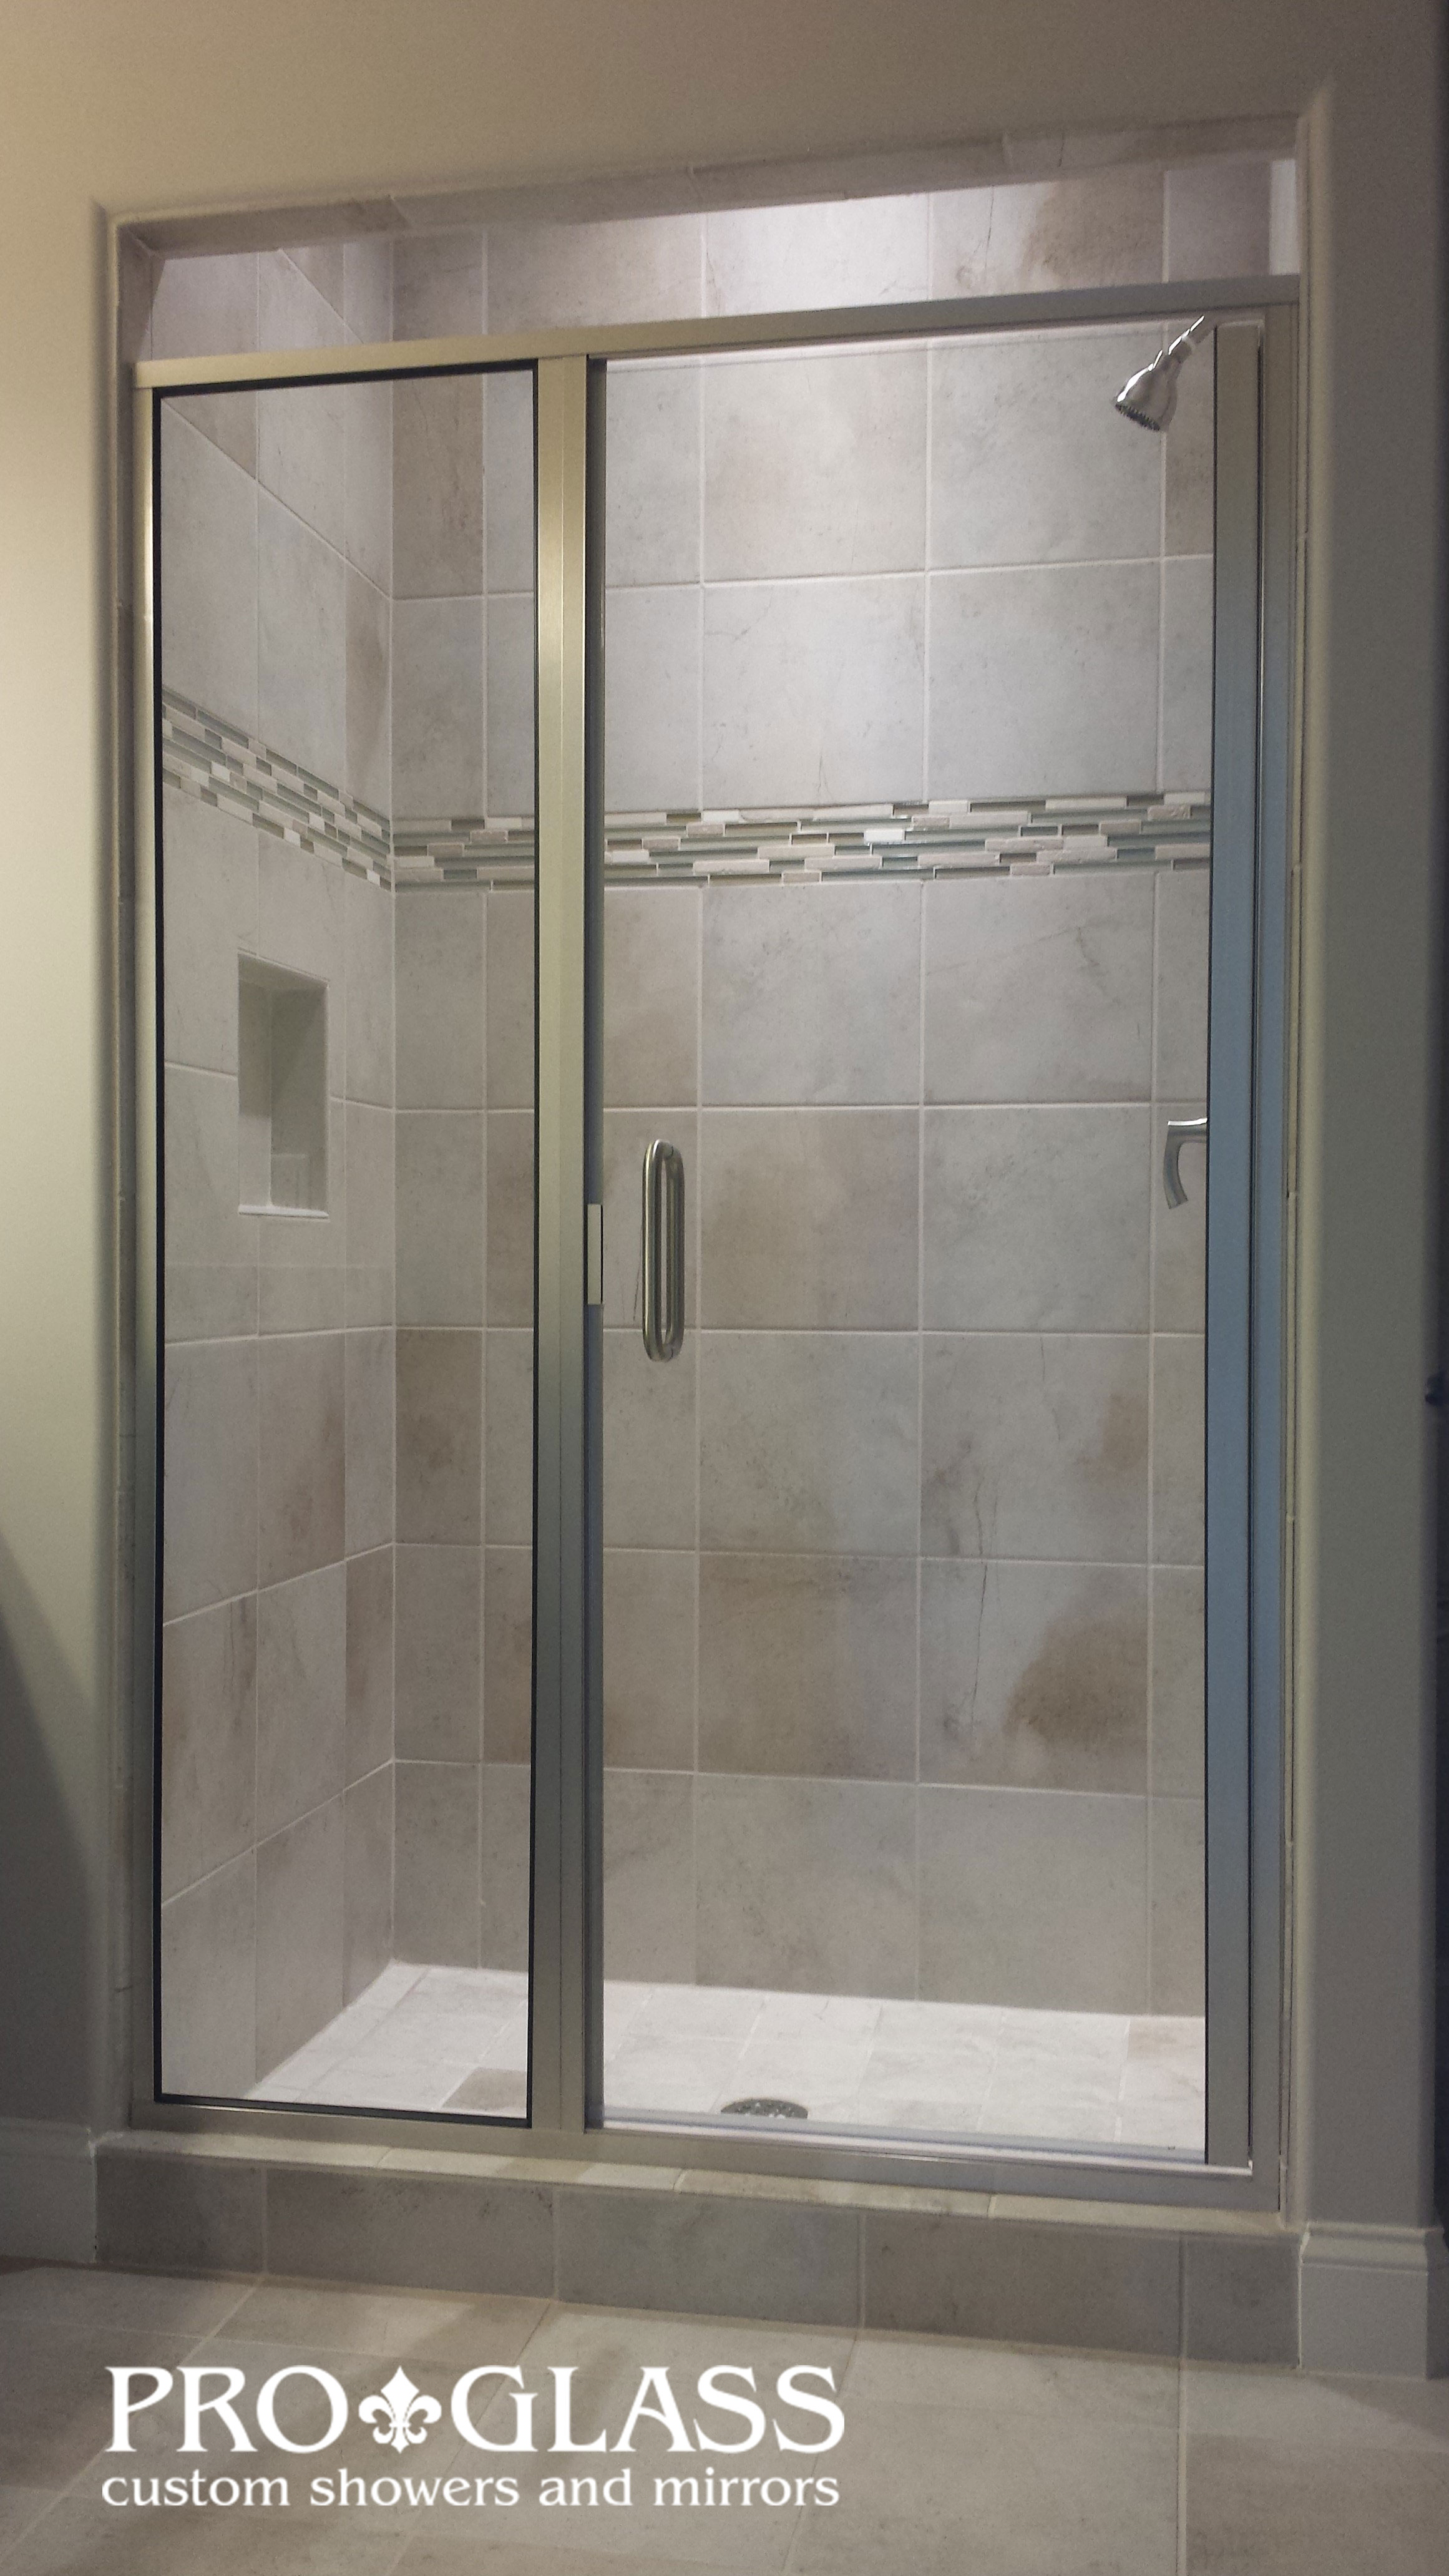 Glass Shower Examples Raleigh | Proglass Shower Gallery